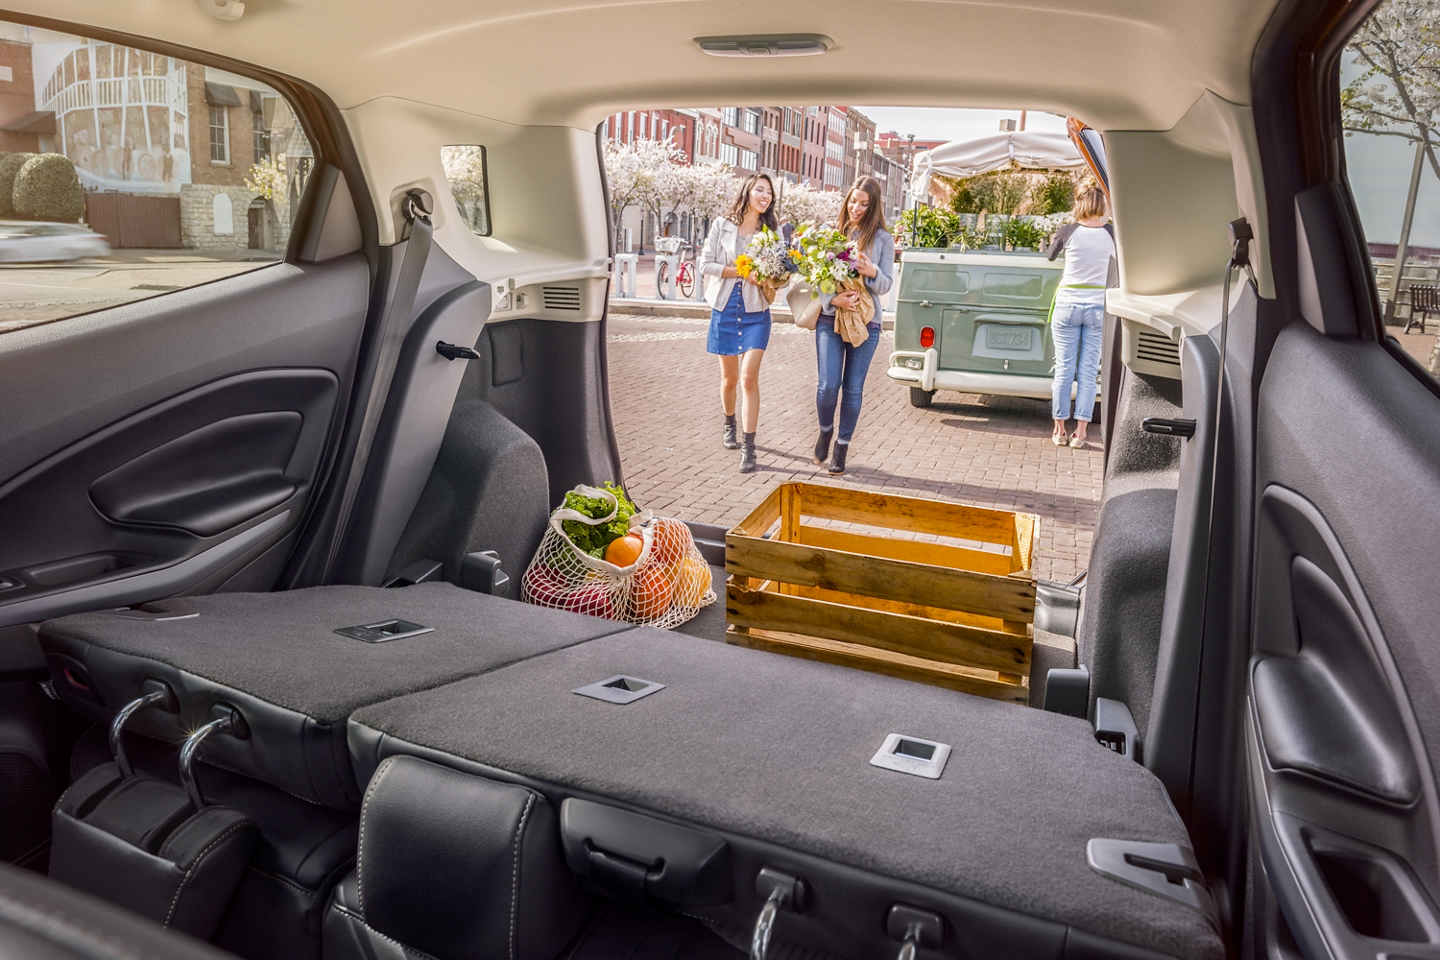 2020 Ford EcoSport - There's Room to Spare